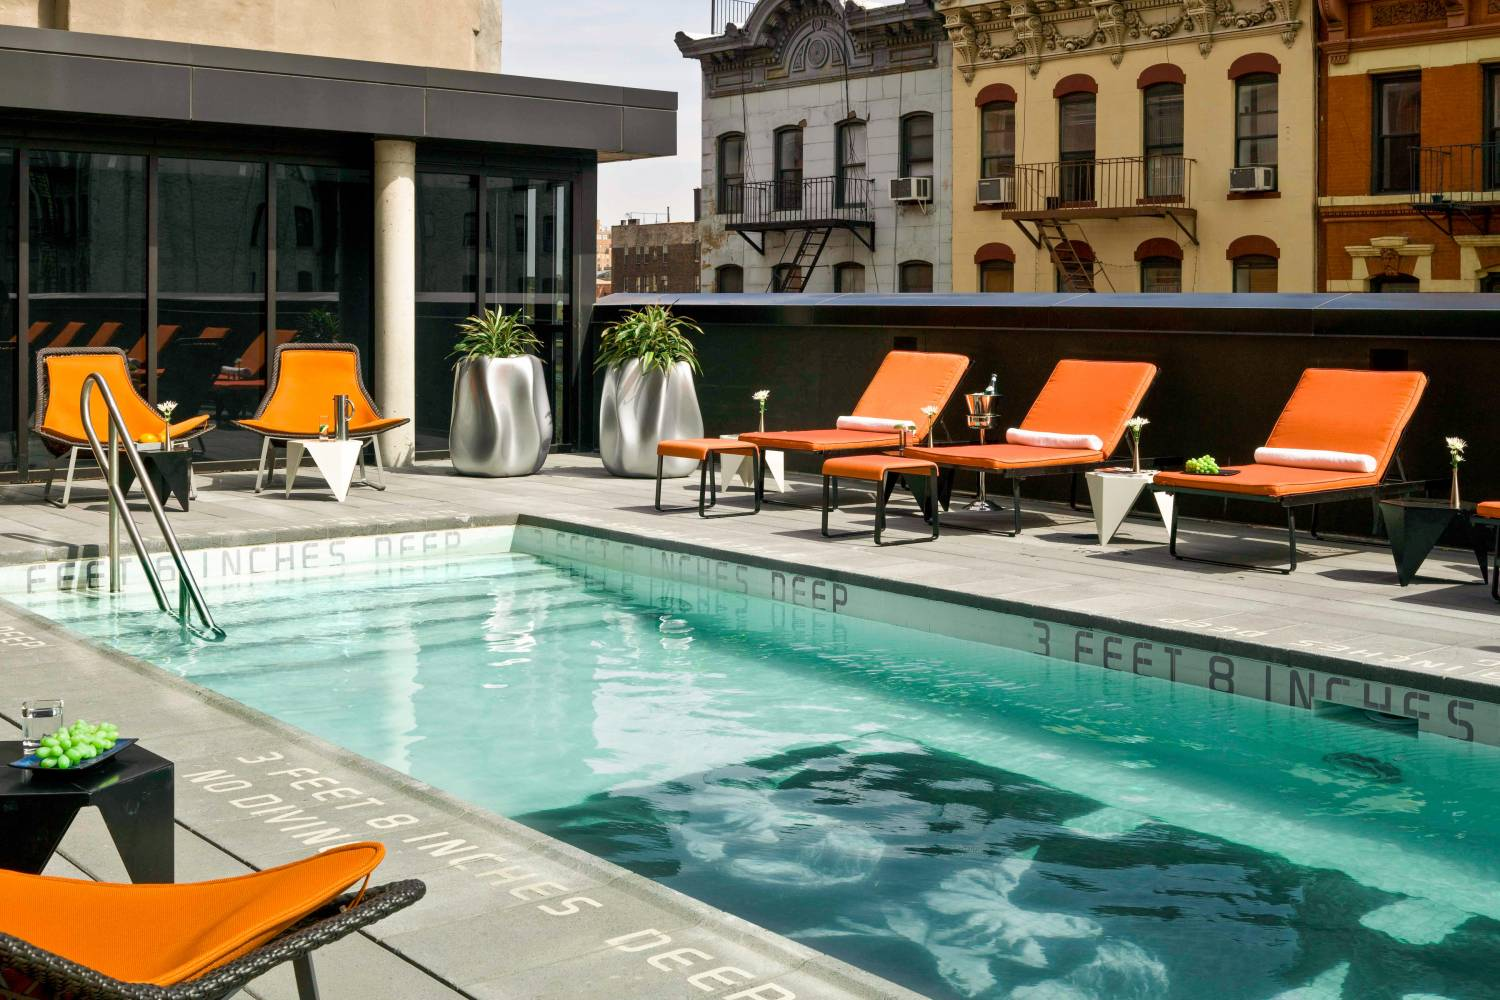 Nyc hotels with swimming pools - Hotel new york swimming pool roof ...